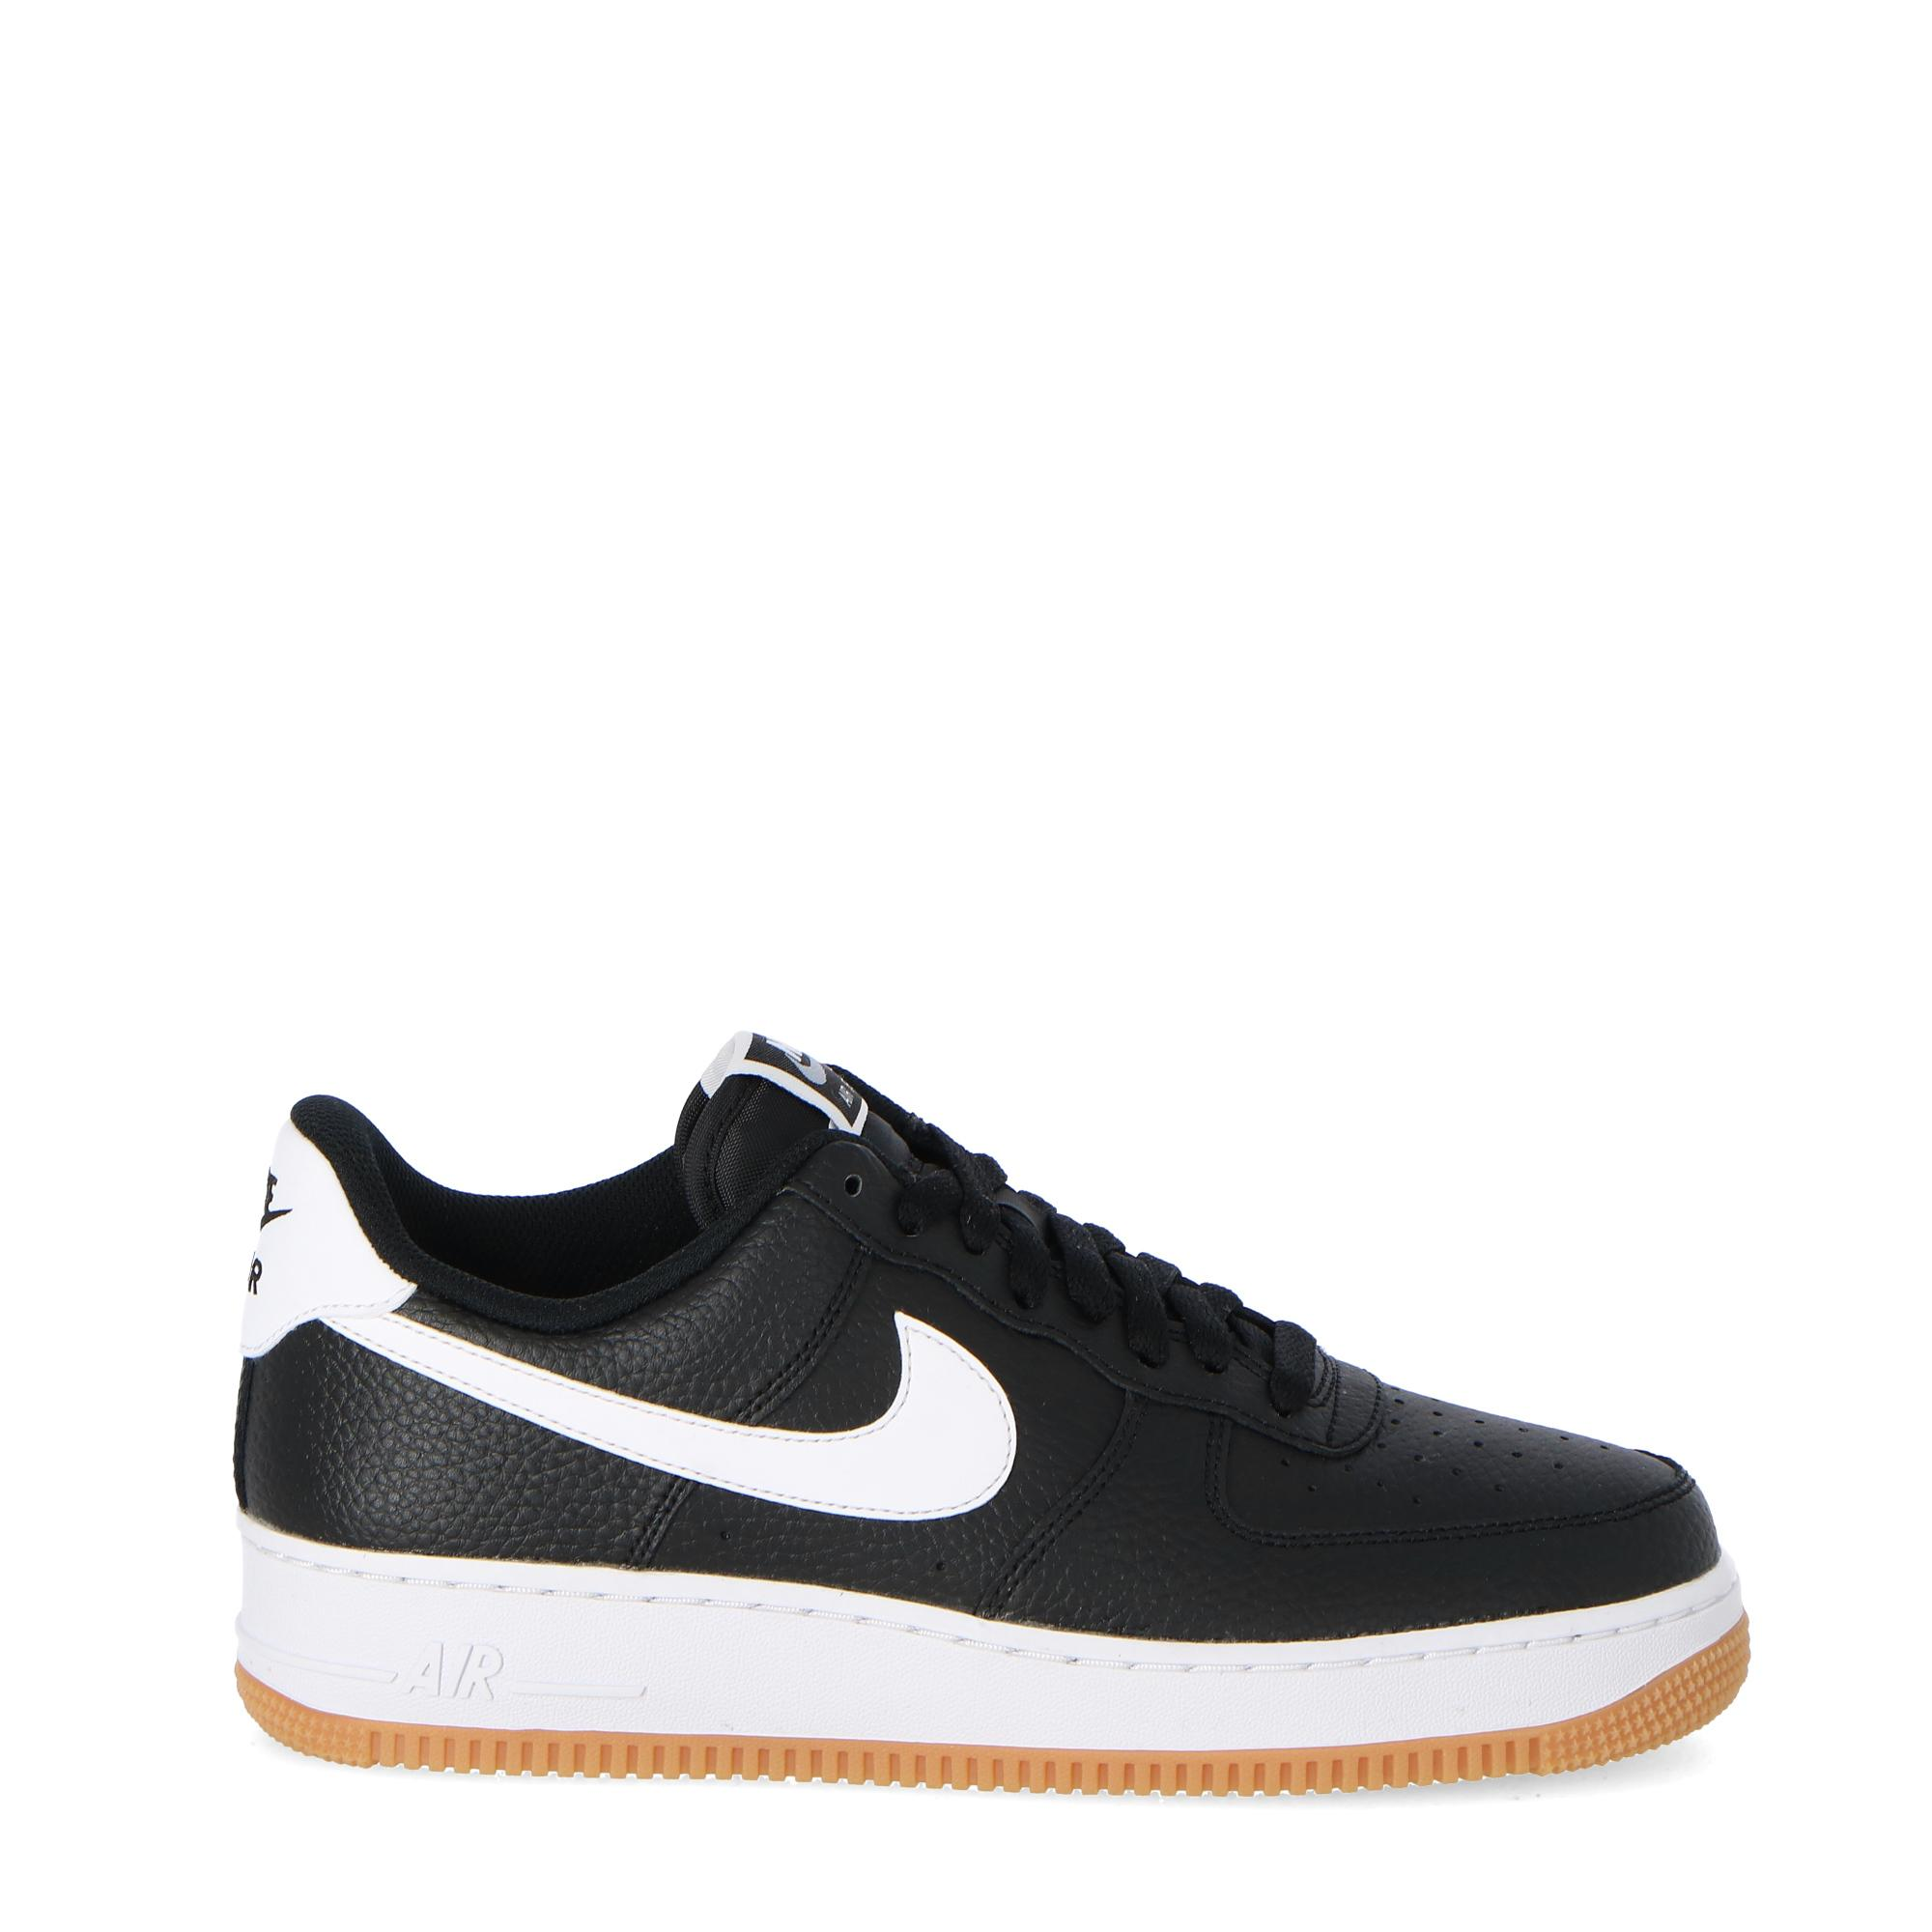 nike air force 1 grey black | Exclusive Offers · Top Brands